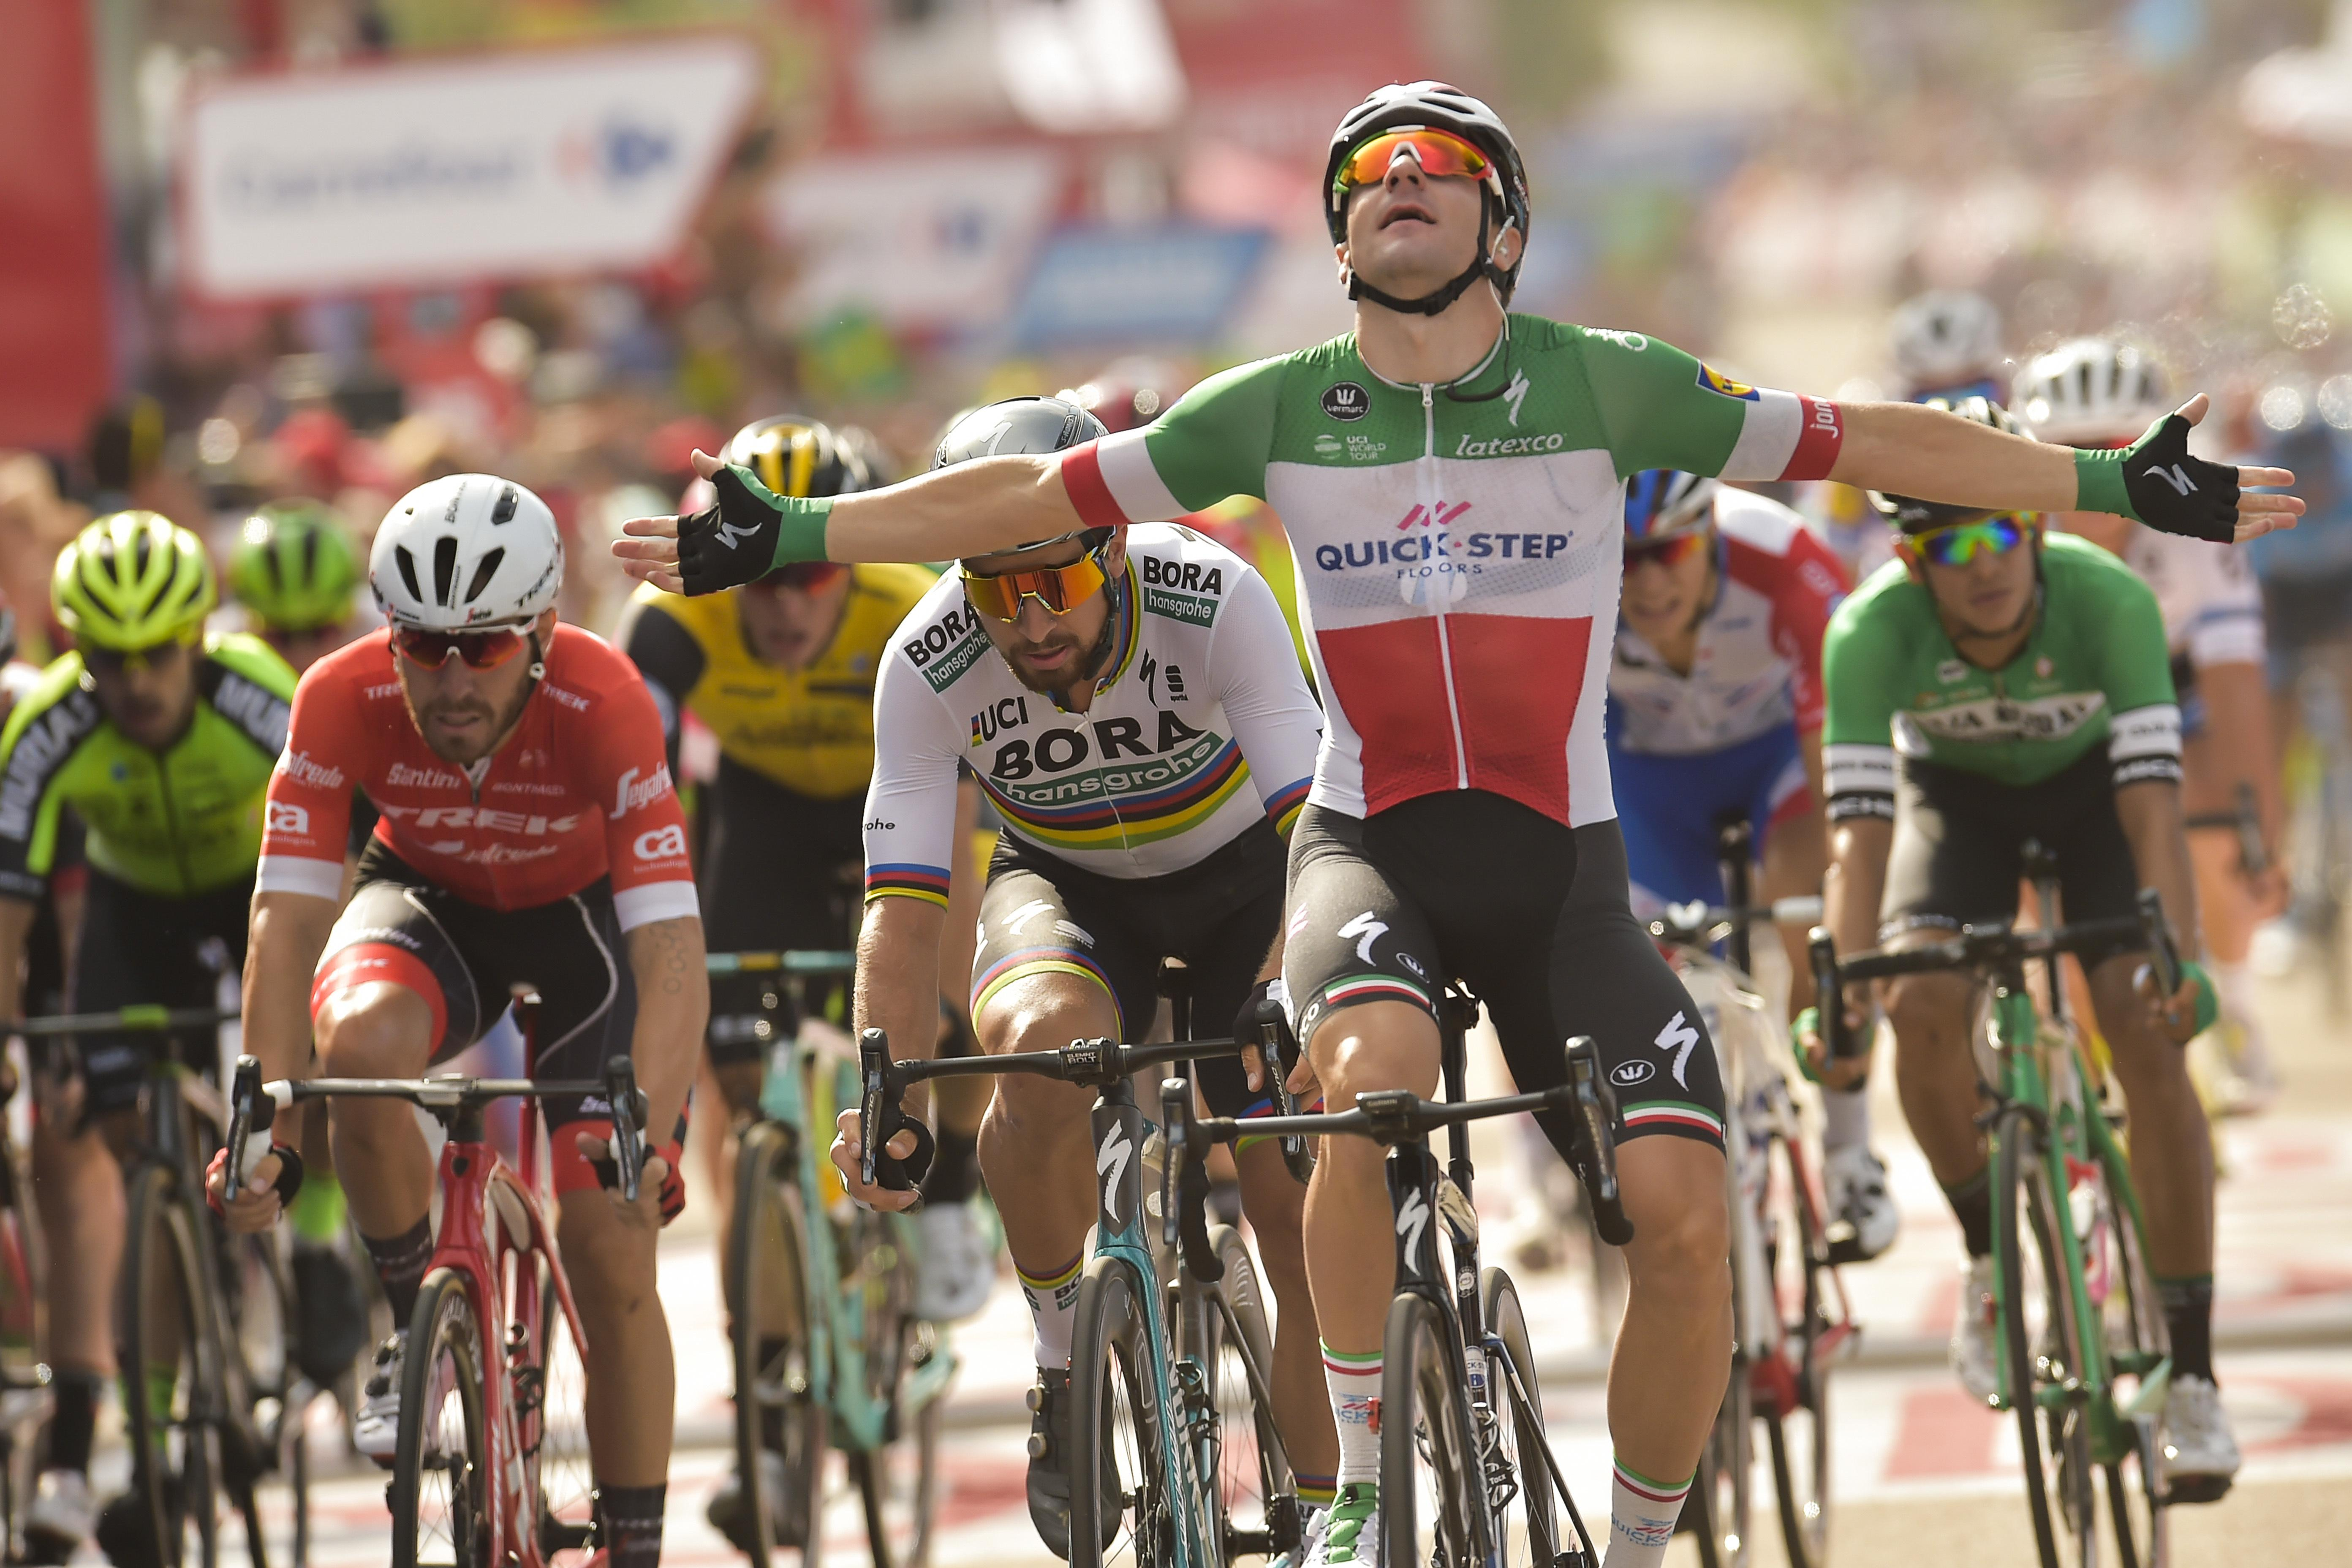 Italian sprint ace Elia Viviani won stage 10 in a quick finish